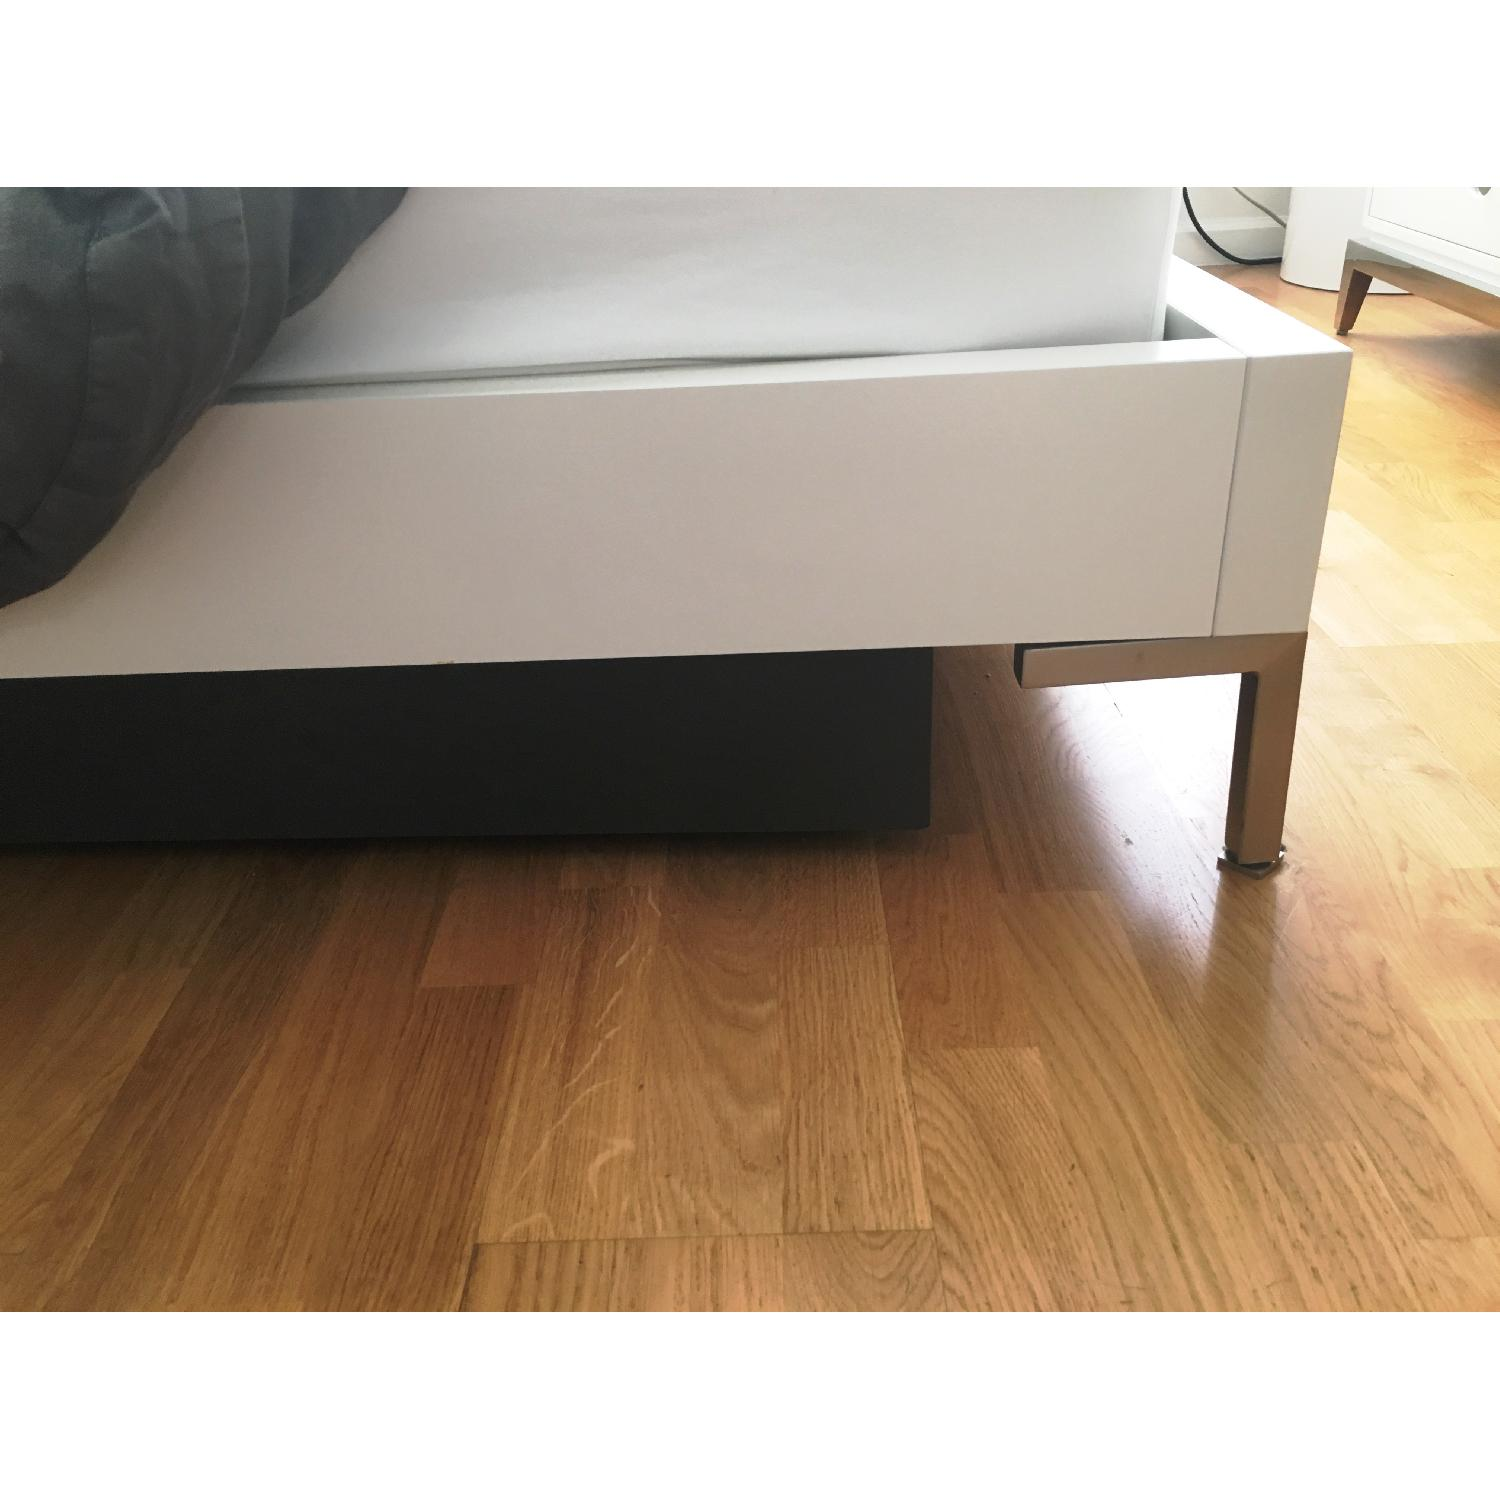 Boconcept White Lacquer Queen Storage Bed - image-6